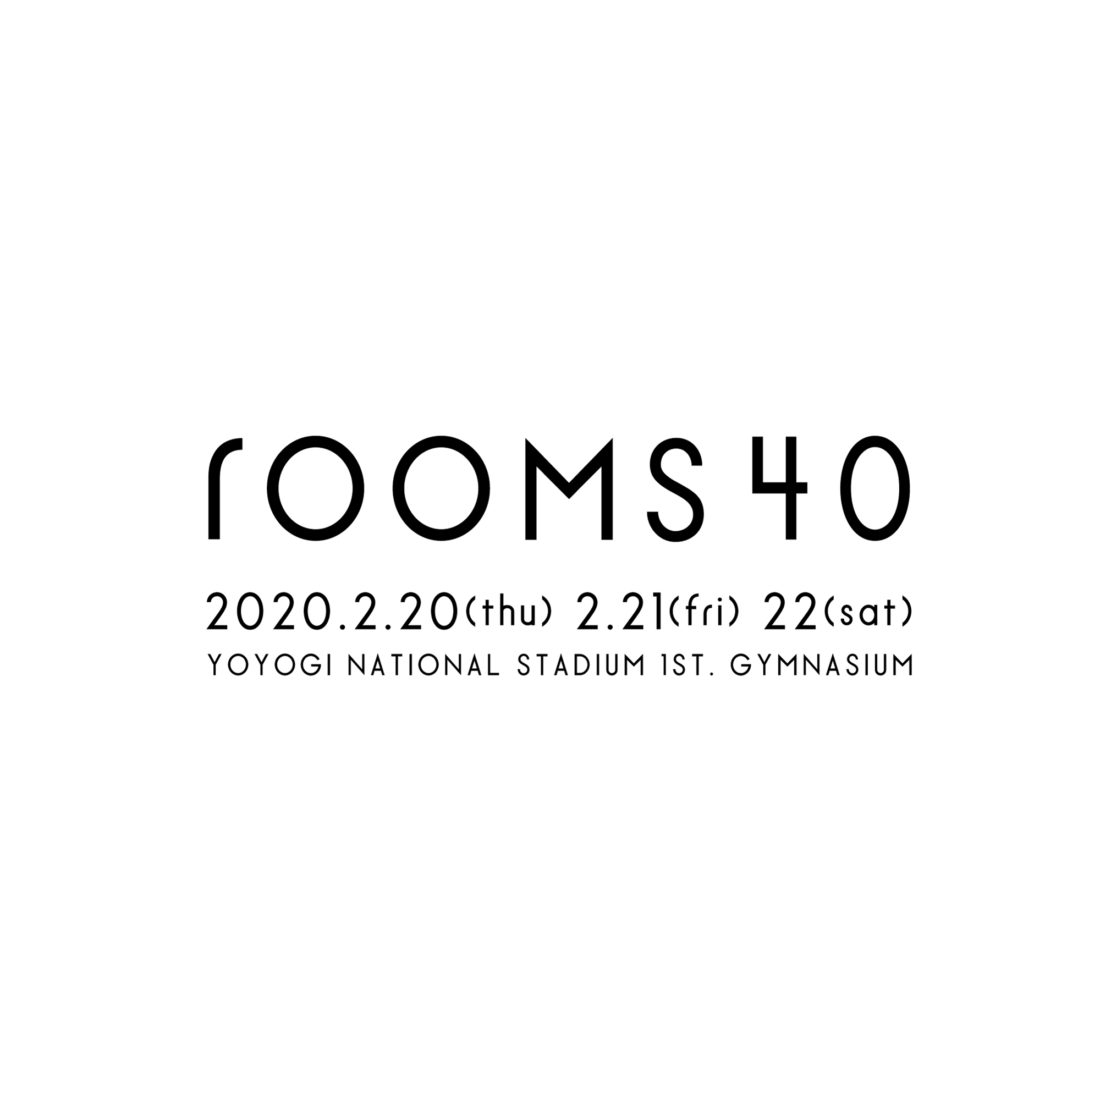 「rooms40」出展のご案内